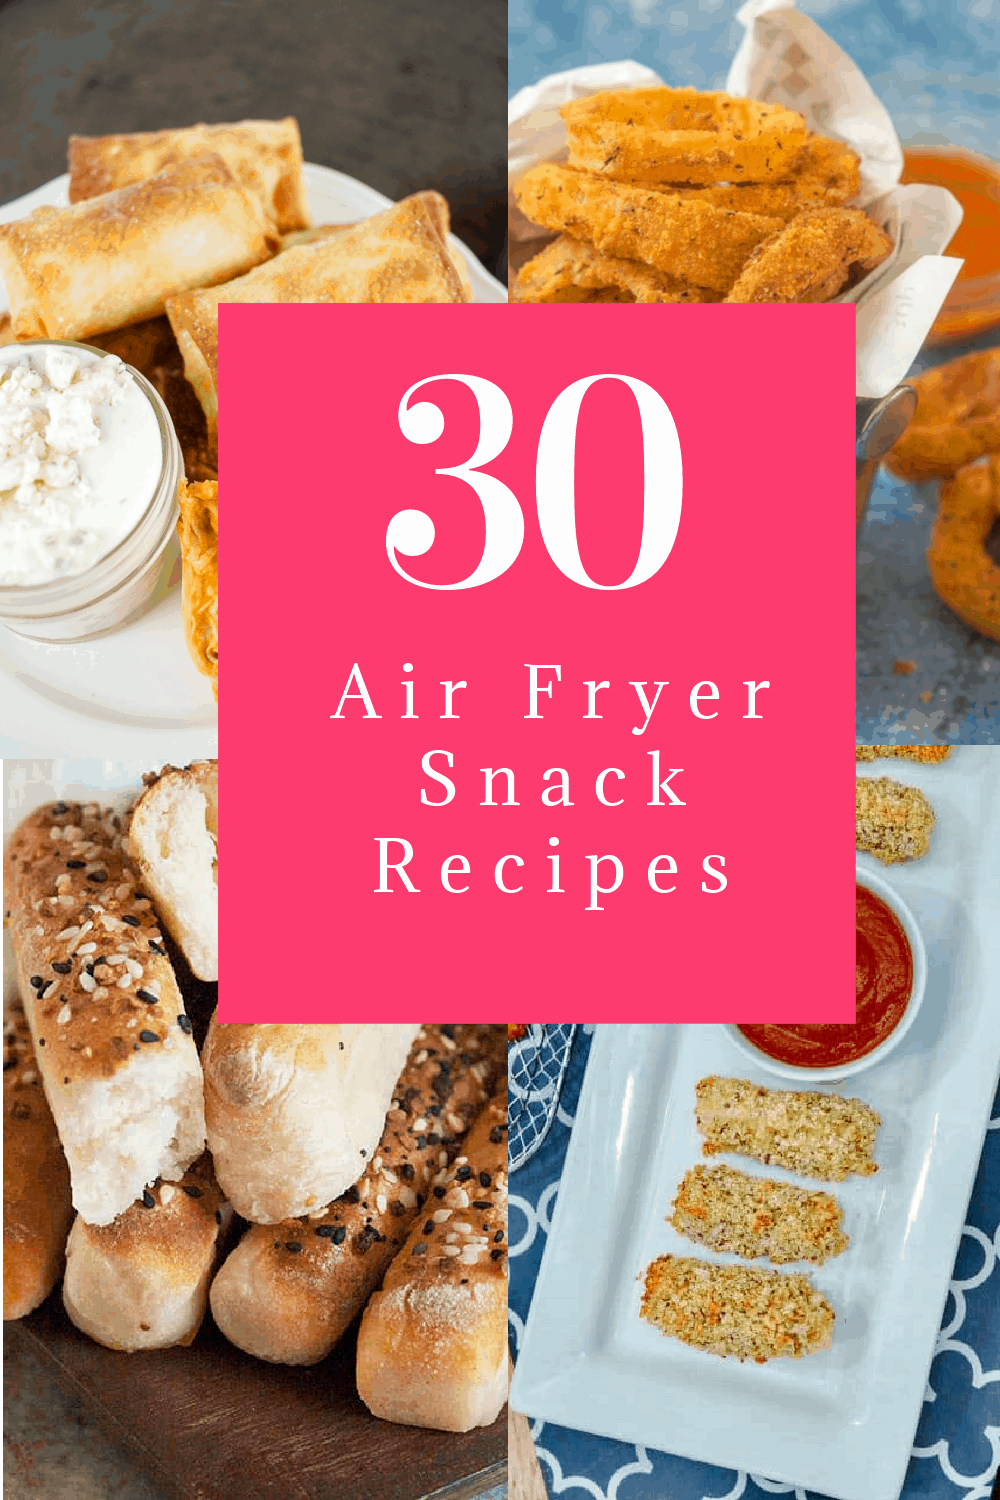 Can't keep your hands out of the deep-fried cookie jar? Perhaps this will help! These air fryer snack recipes prove that you can eat healthier without giving up all your favorite goodies. Check them out!